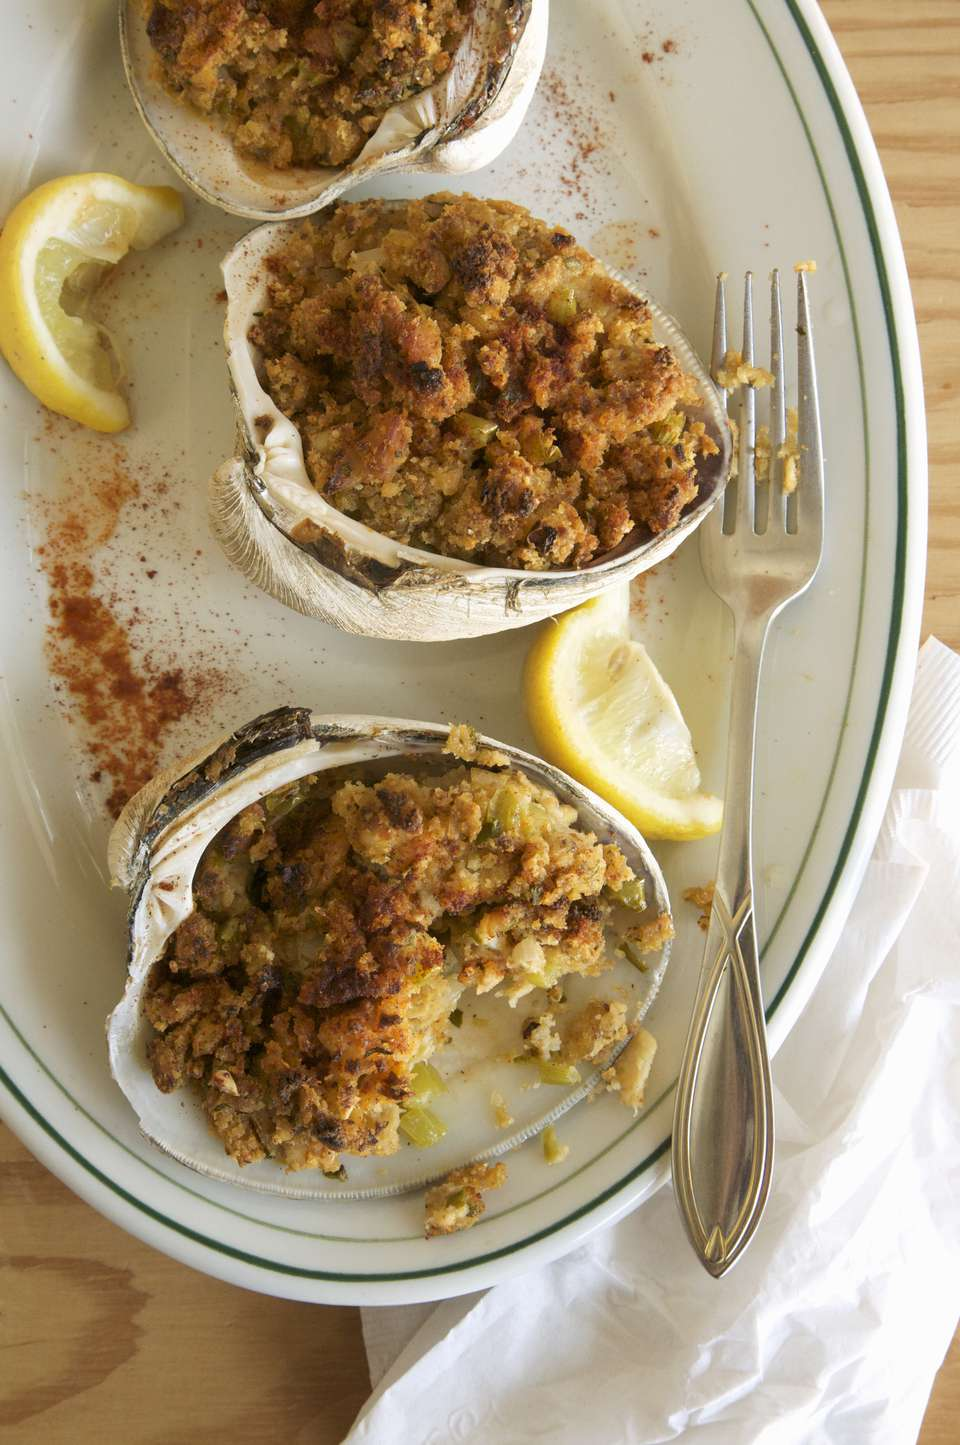 Stuffed clams with lemon garnish on plate, close up